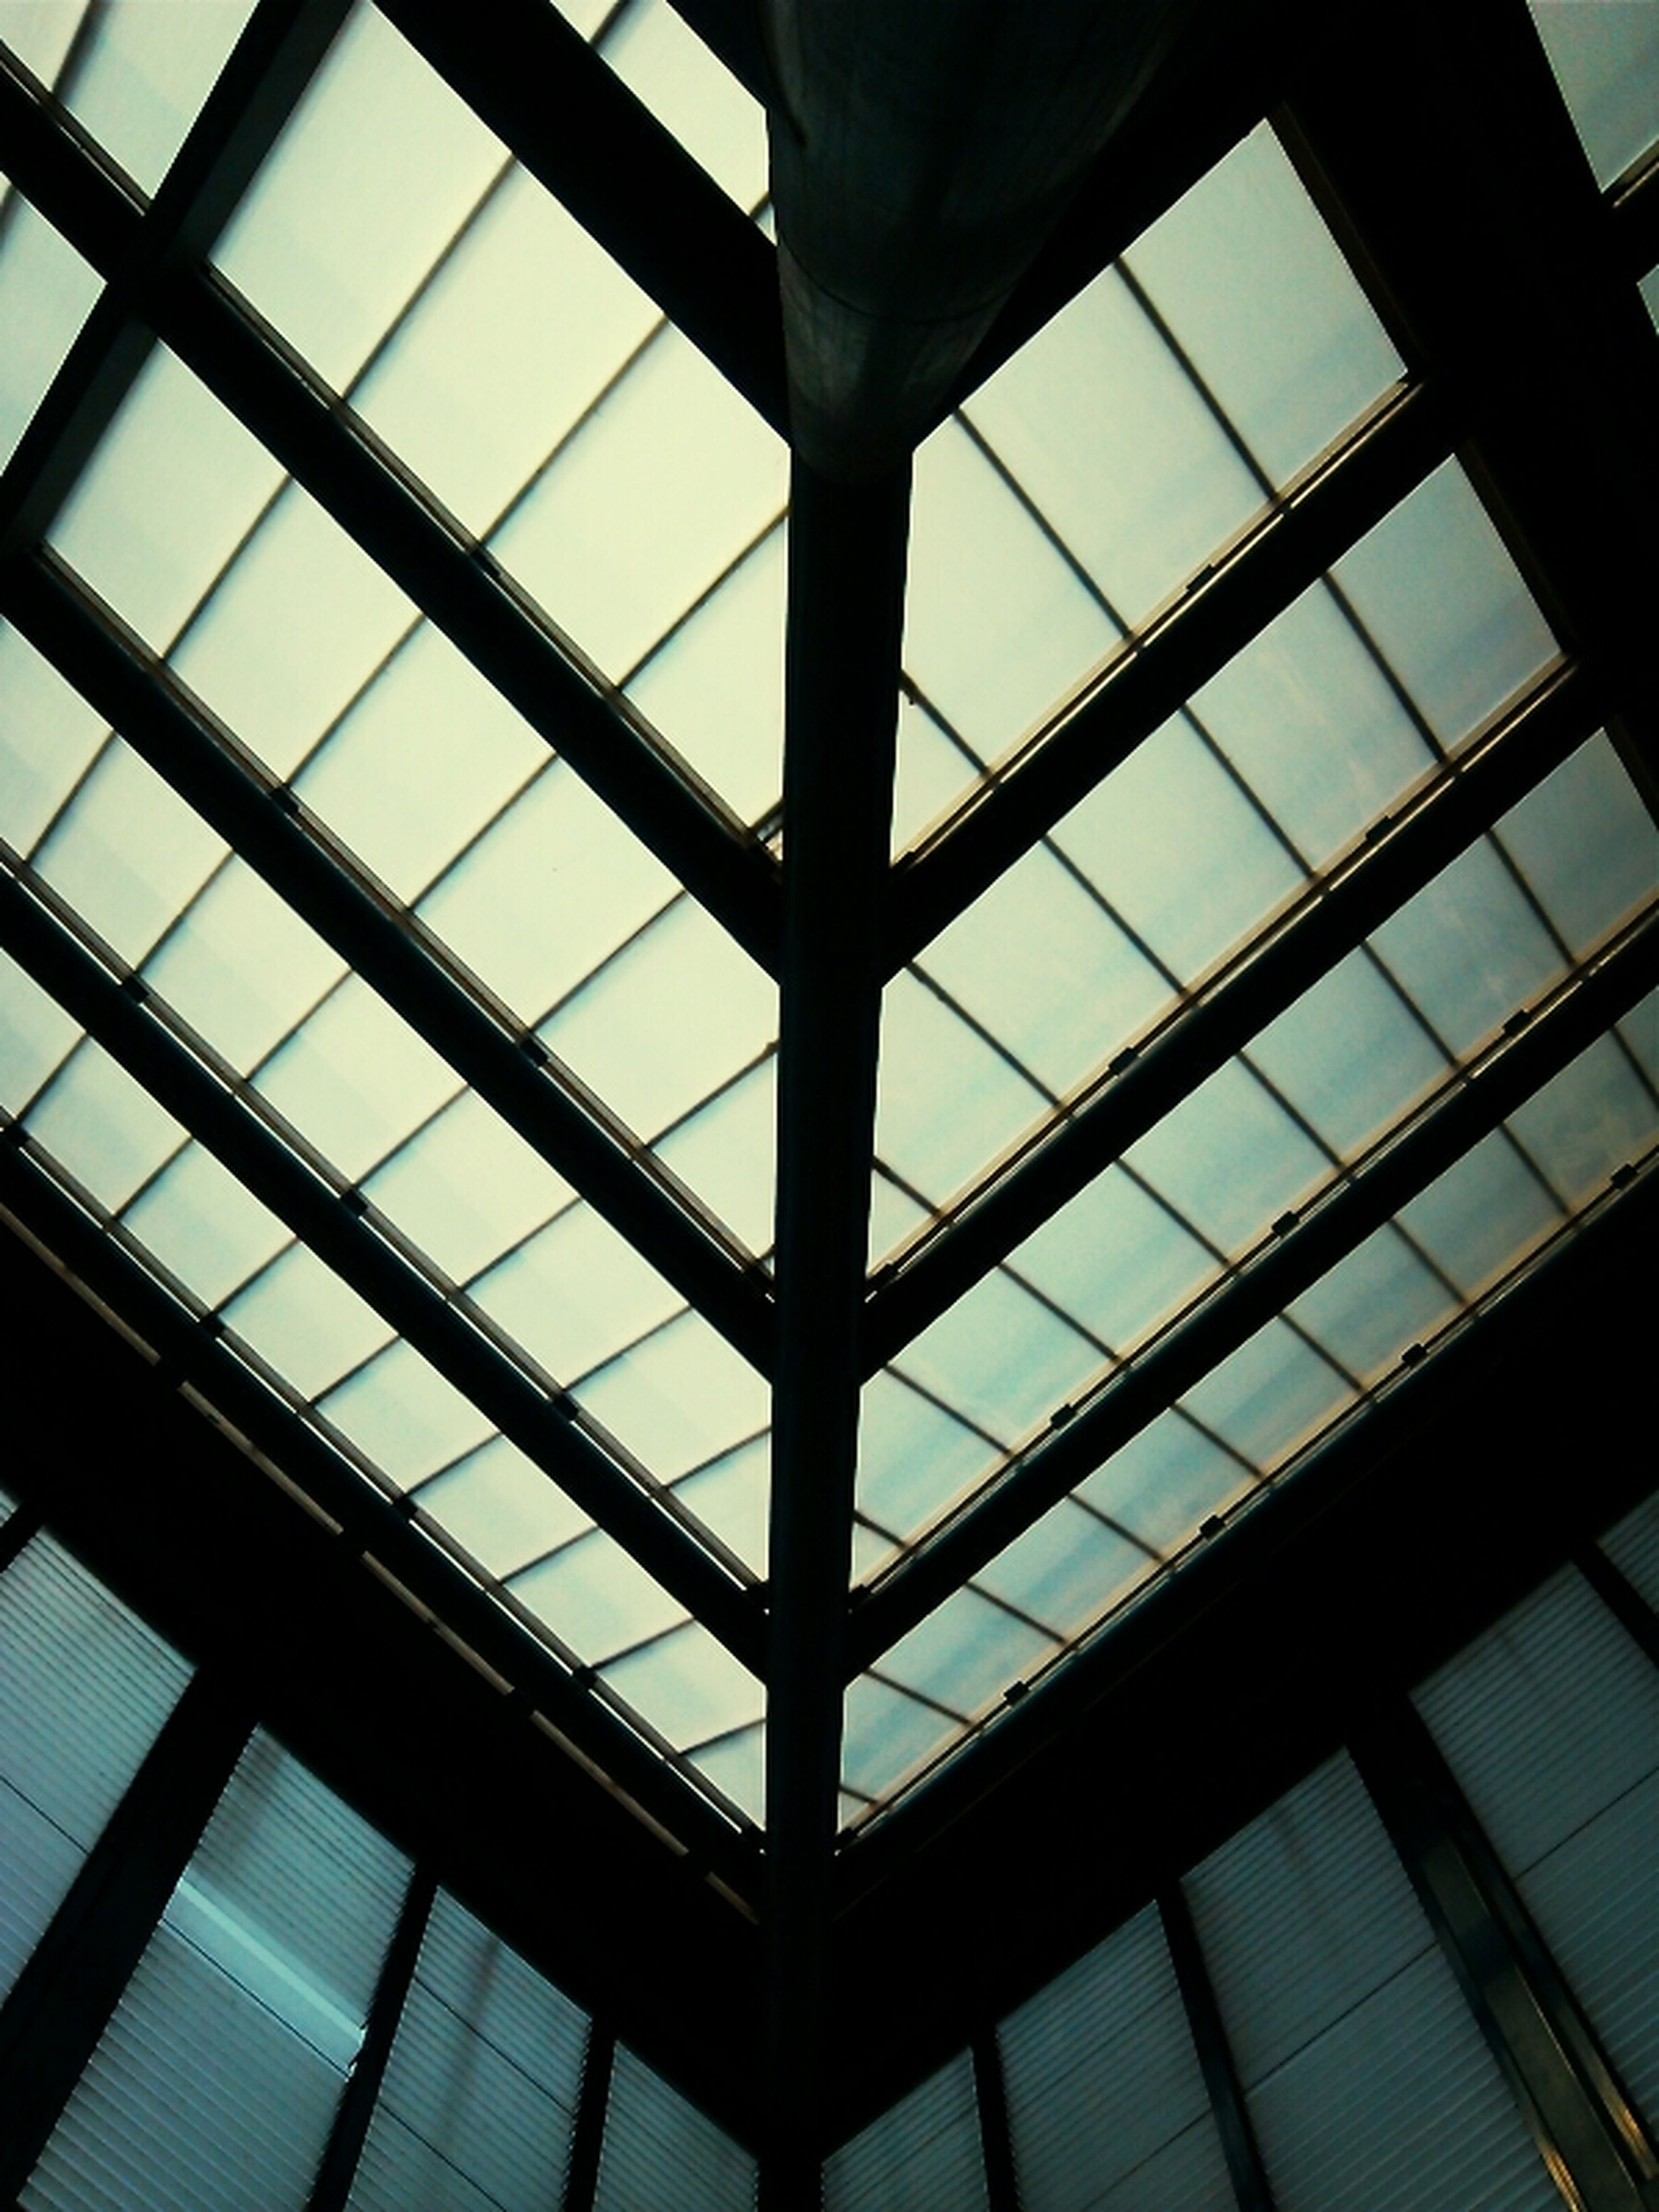 indoors, glass - material, window, architecture, built structure, low angle view, transparent, ceiling, modern, full frame, glass, skylight, pattern, backgrounds, architectural feature, building, reflection, geometric shape, sky, building exterior